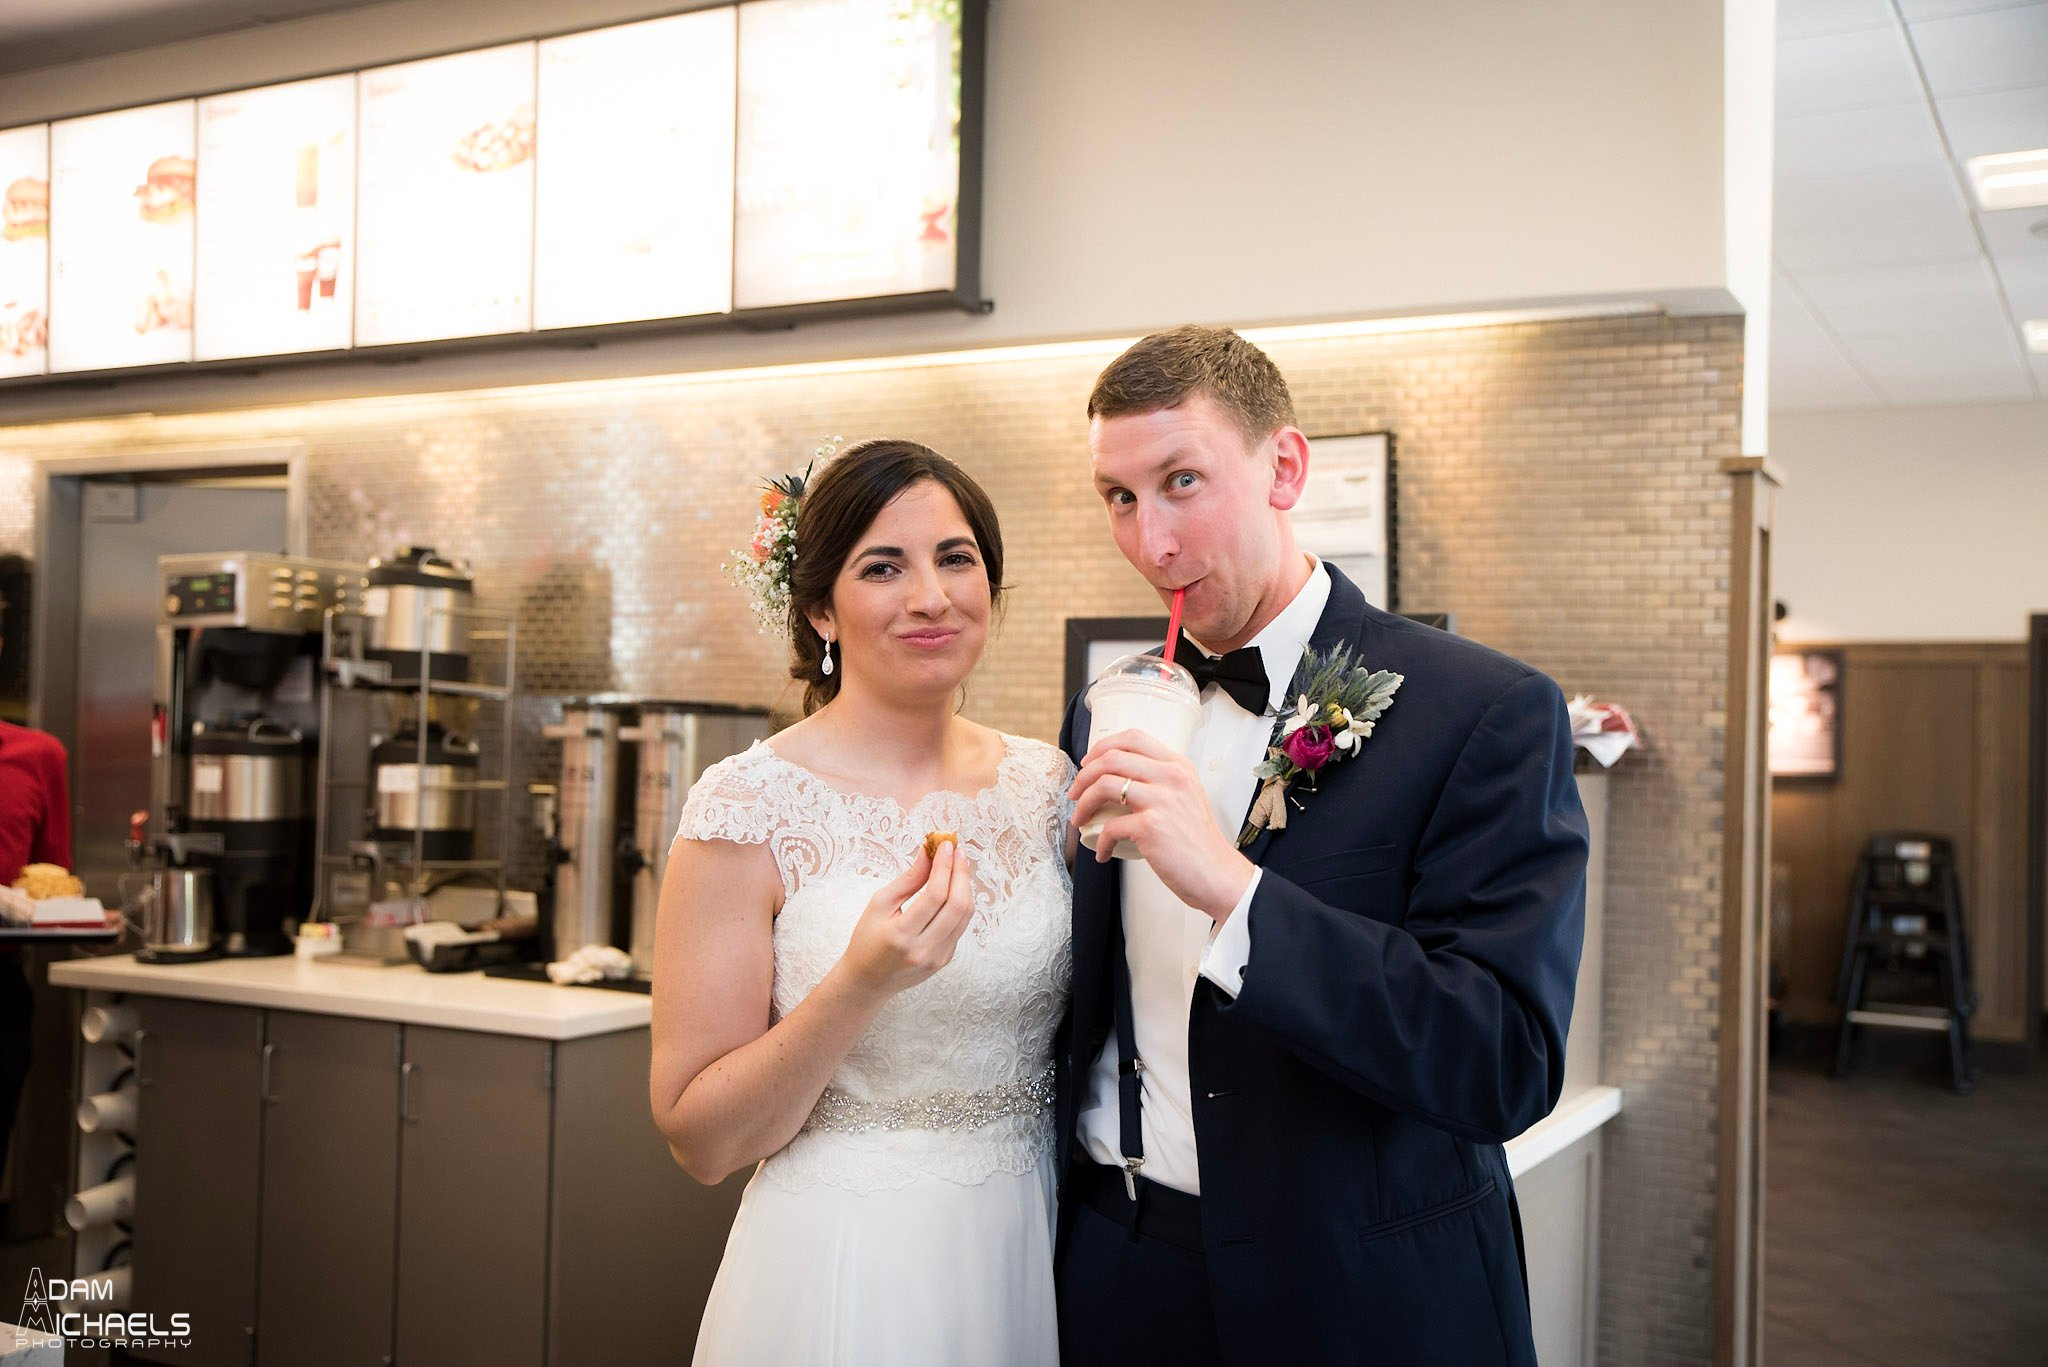 Chick-fil-a Wedding Portraits